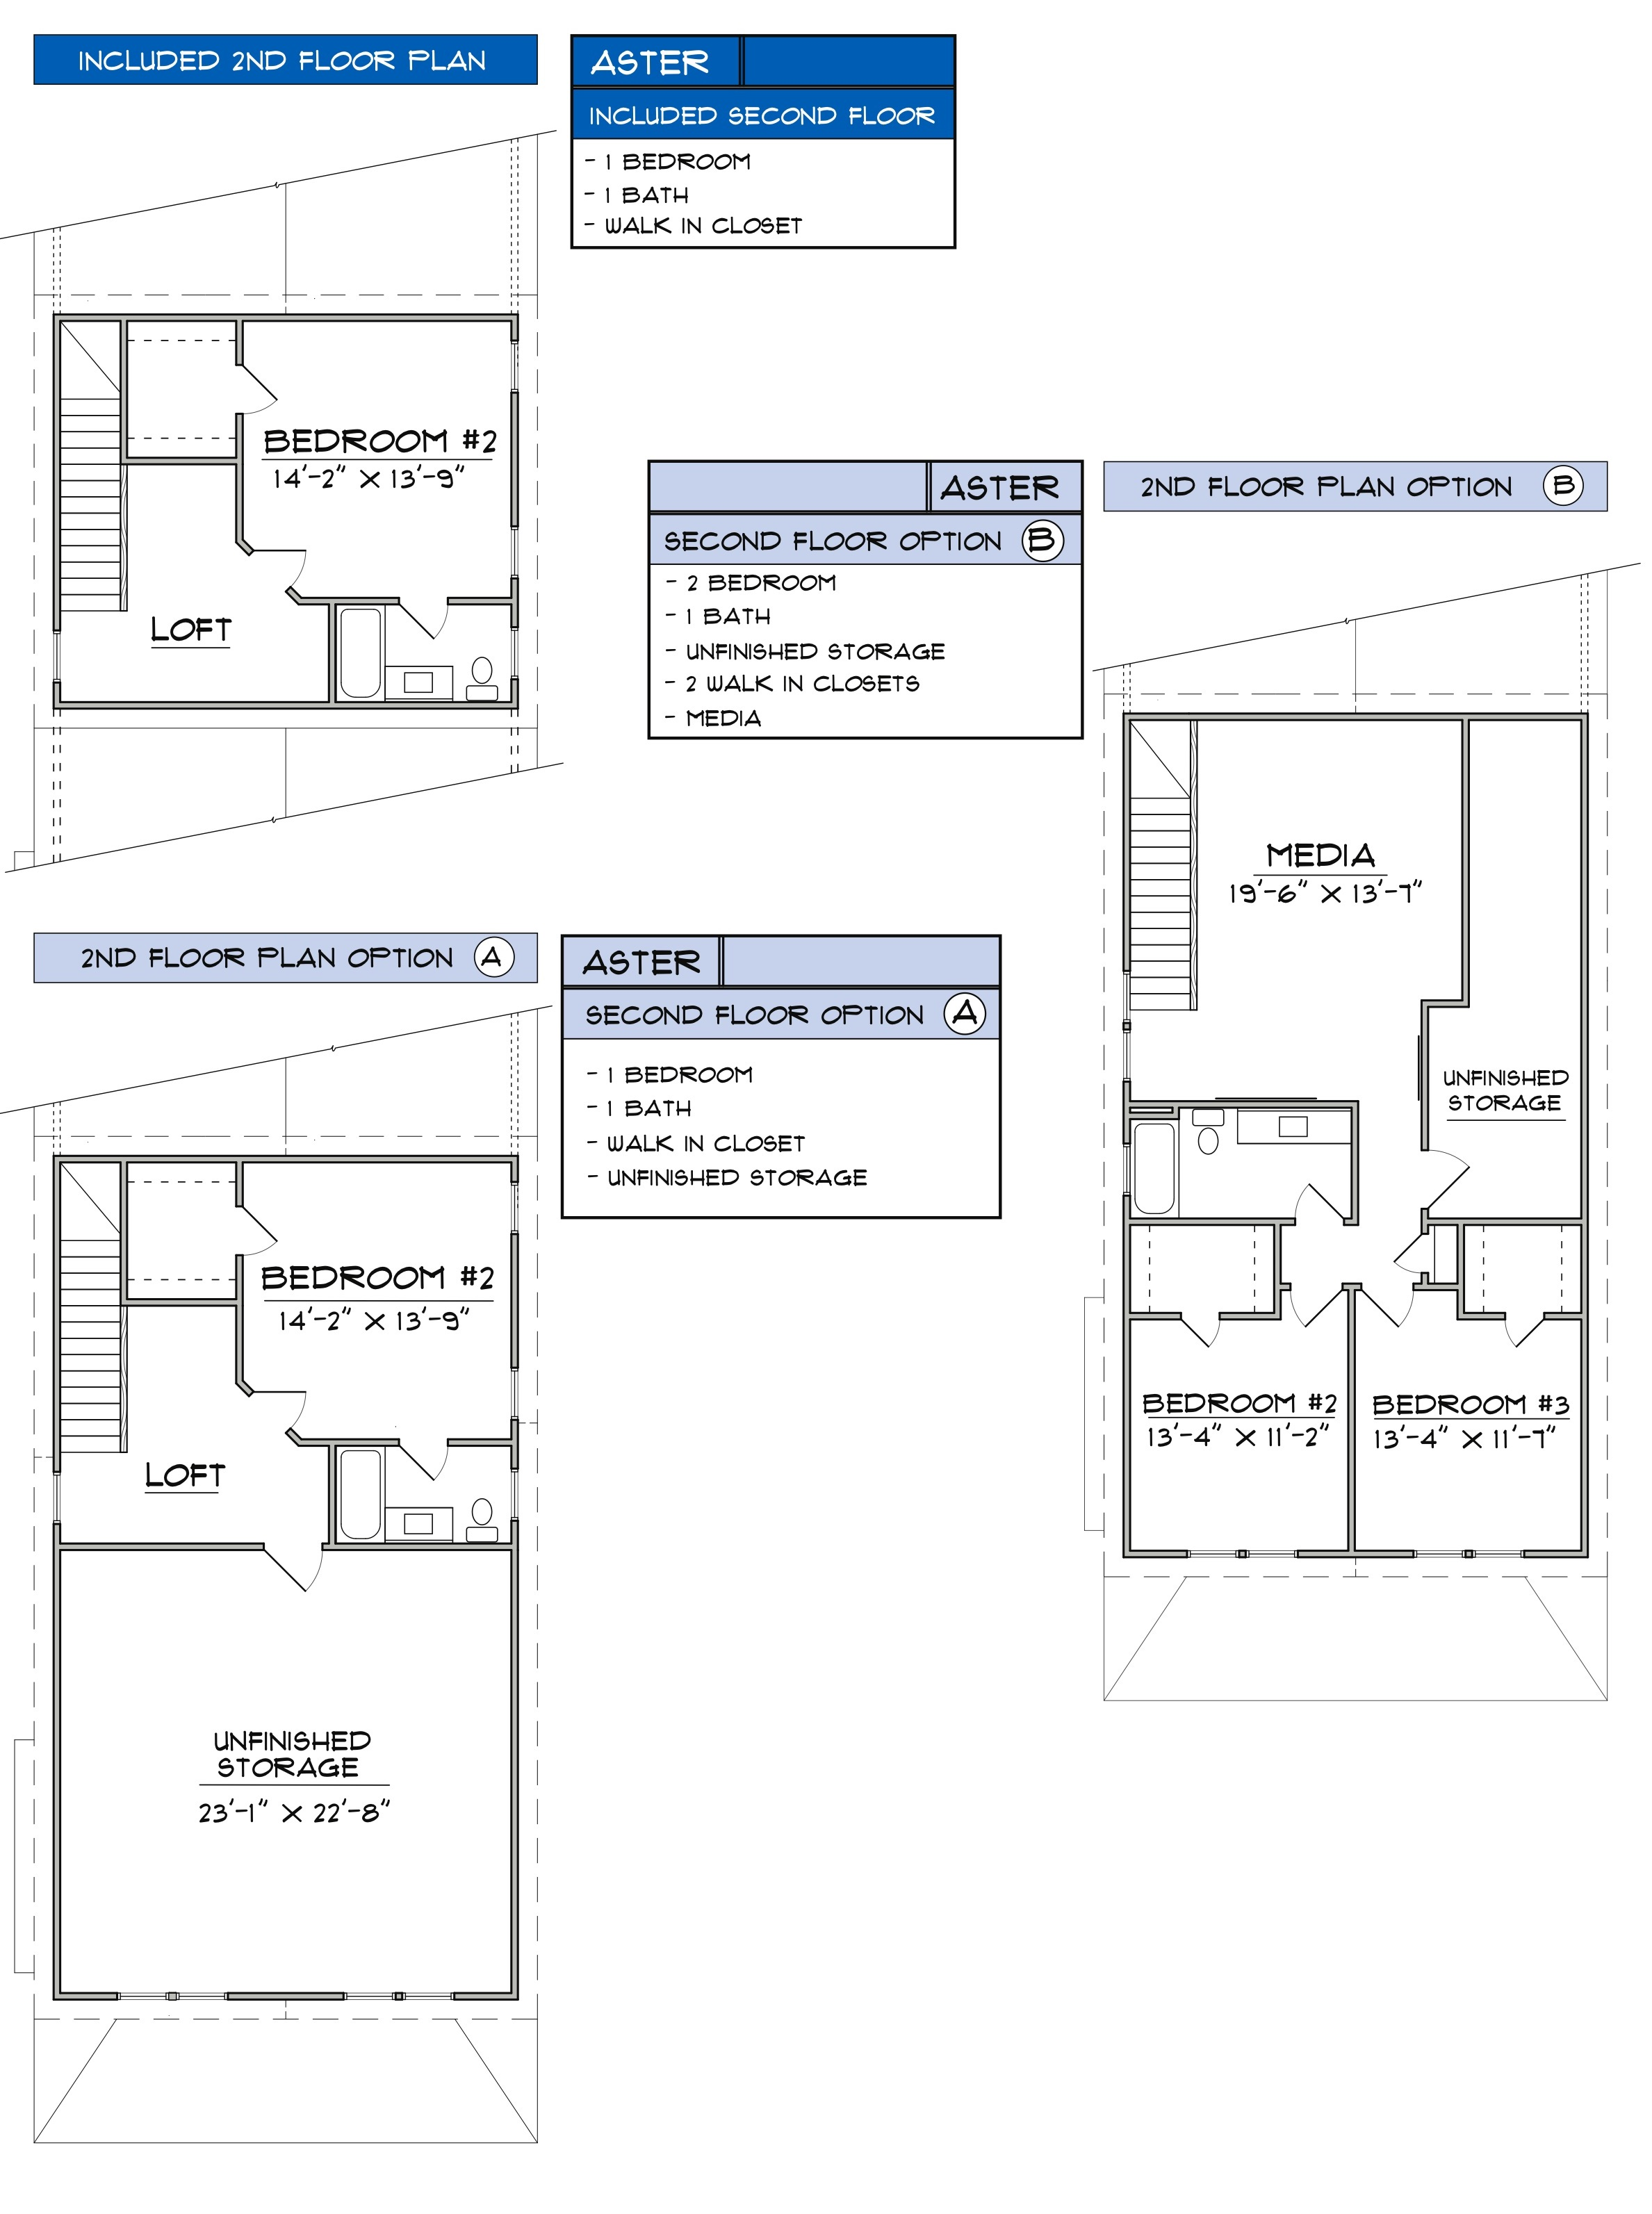 Aster 2nd Floor Plan by The Walk at East Village, Clayton